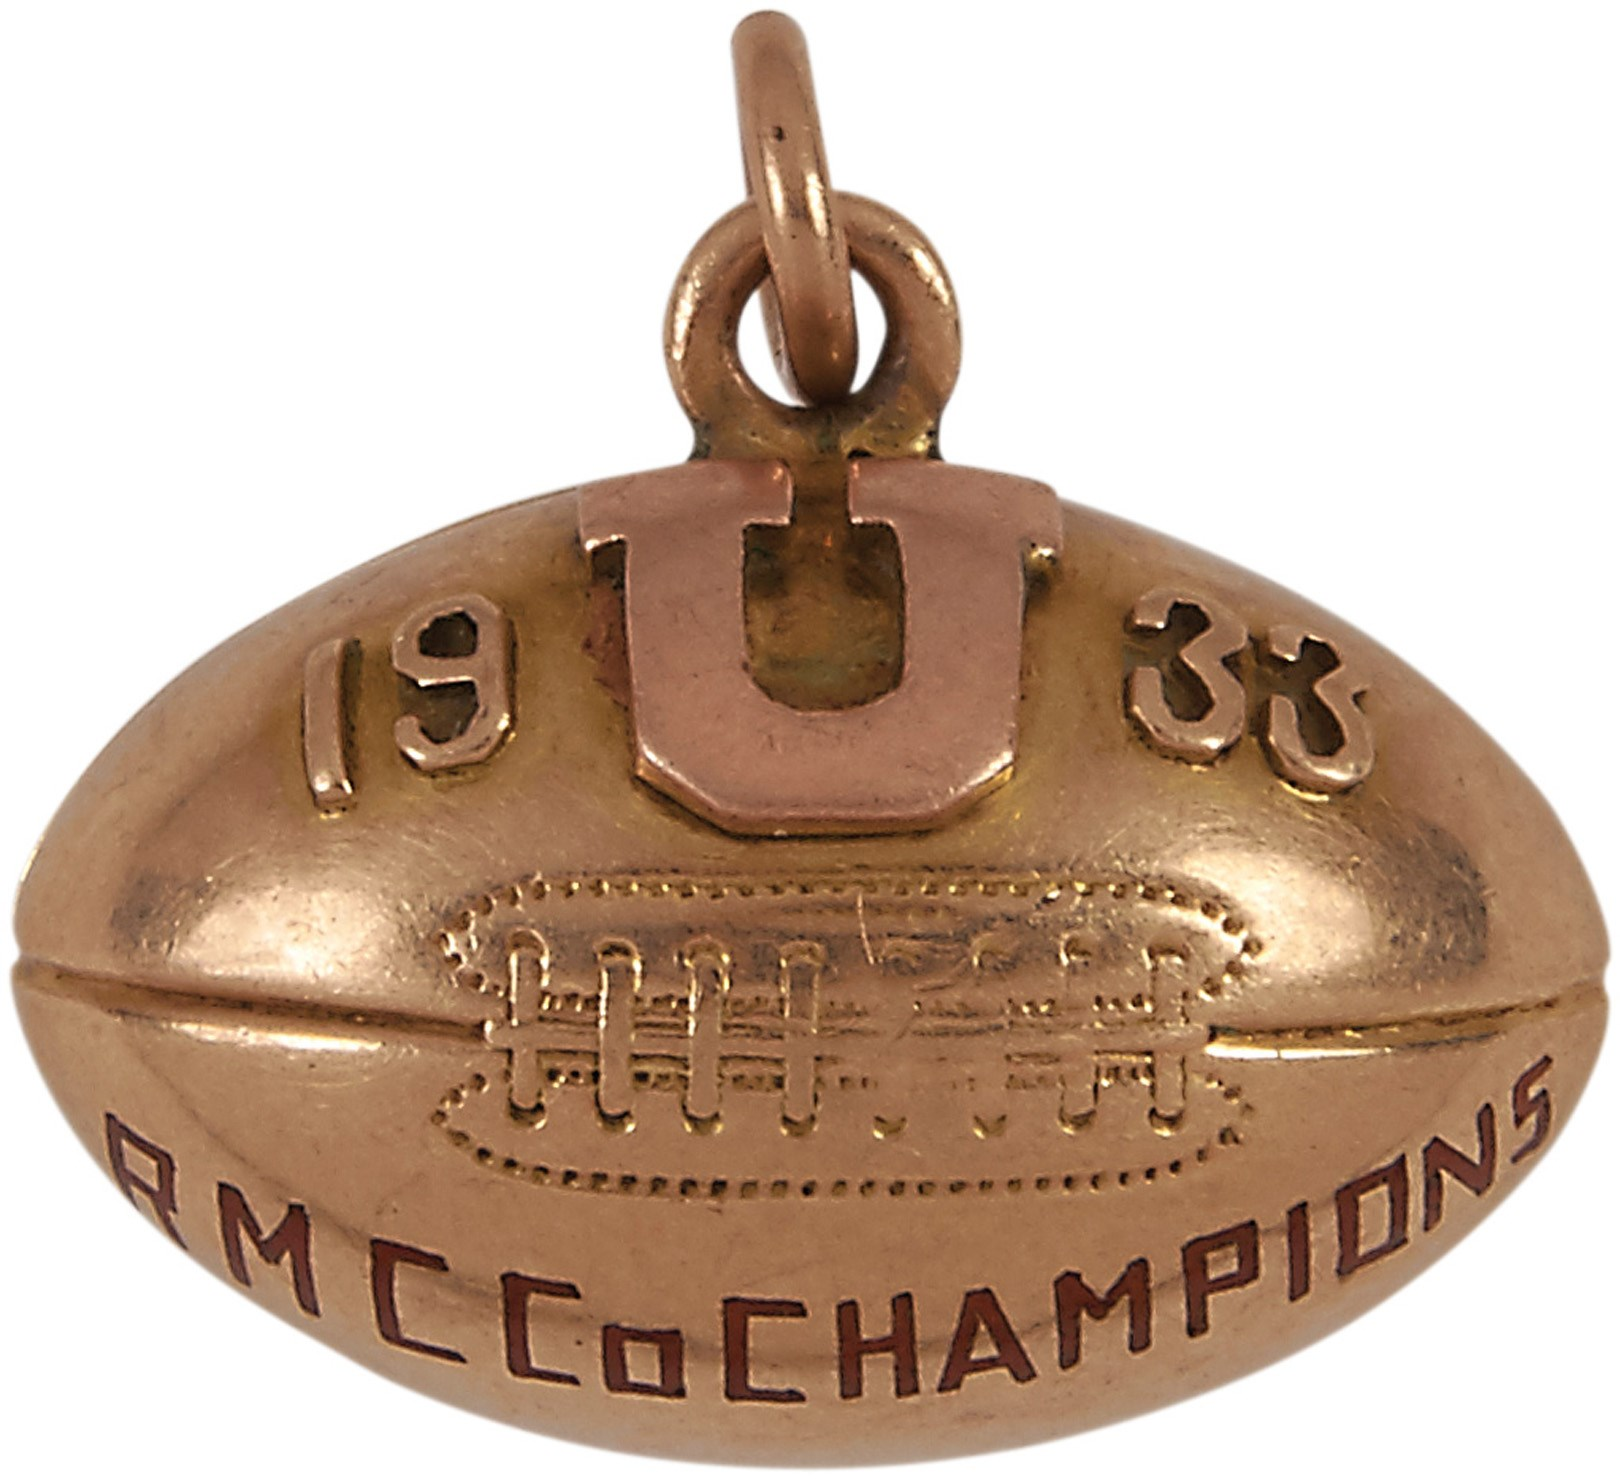 1933 Utah Utes Co-Championship Football Charm - Awarded to T. Swan